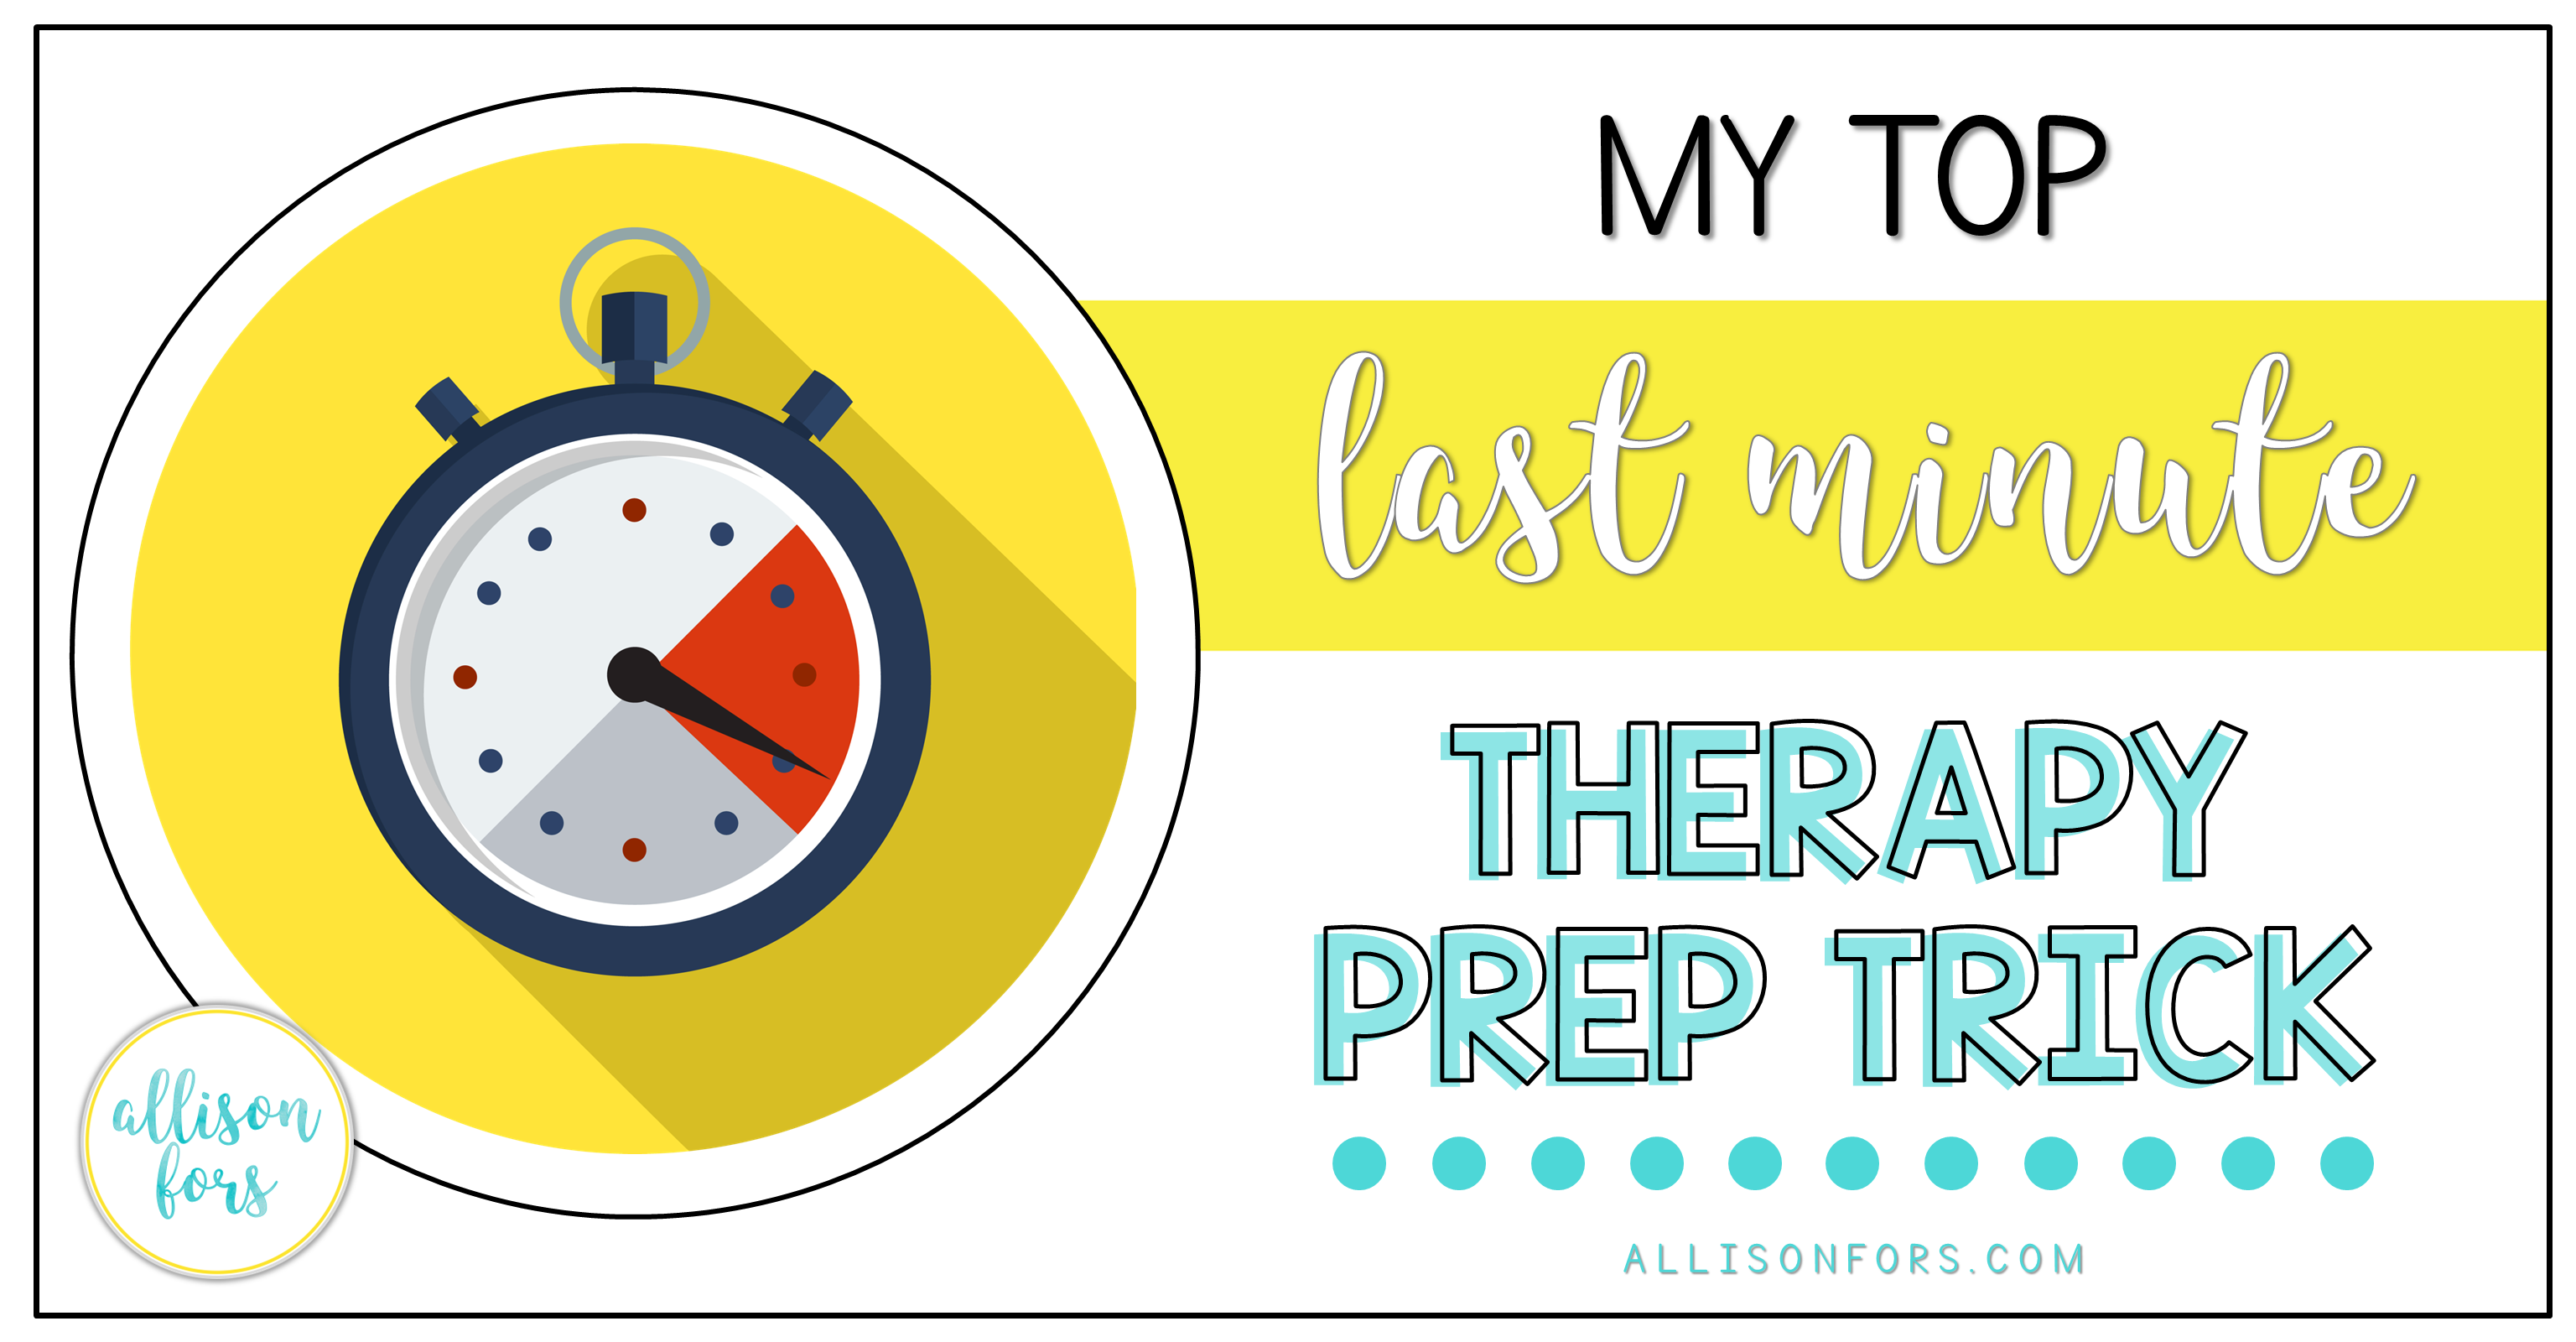 My Top Last Minute Therapy Prep Trick